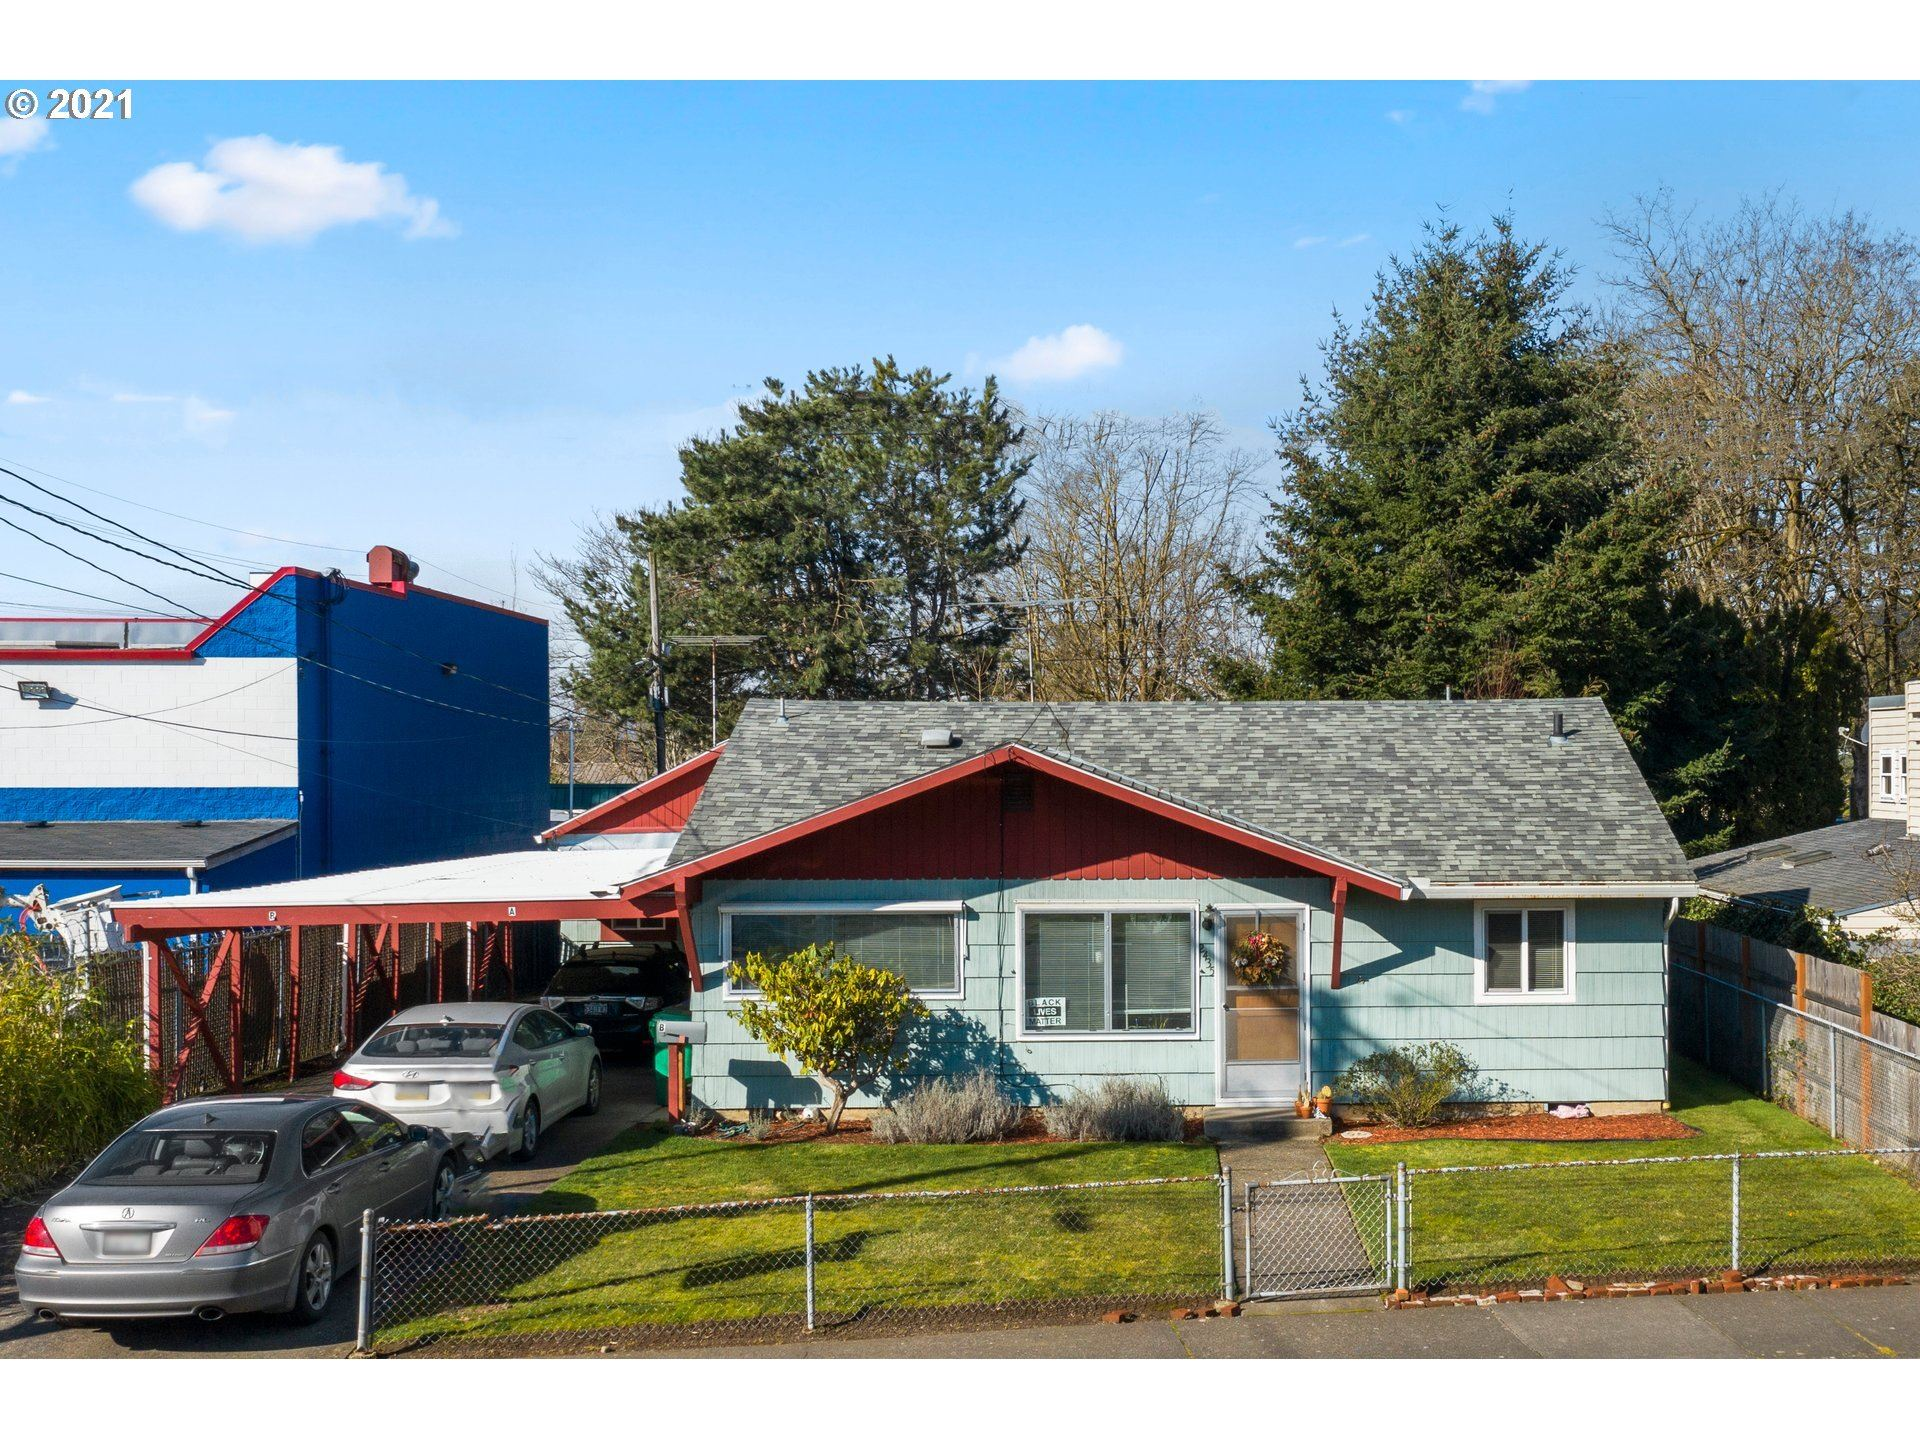 2435 SE 92ND AVE #A & B, Portland, OR 97216 - MLS#: 21682280